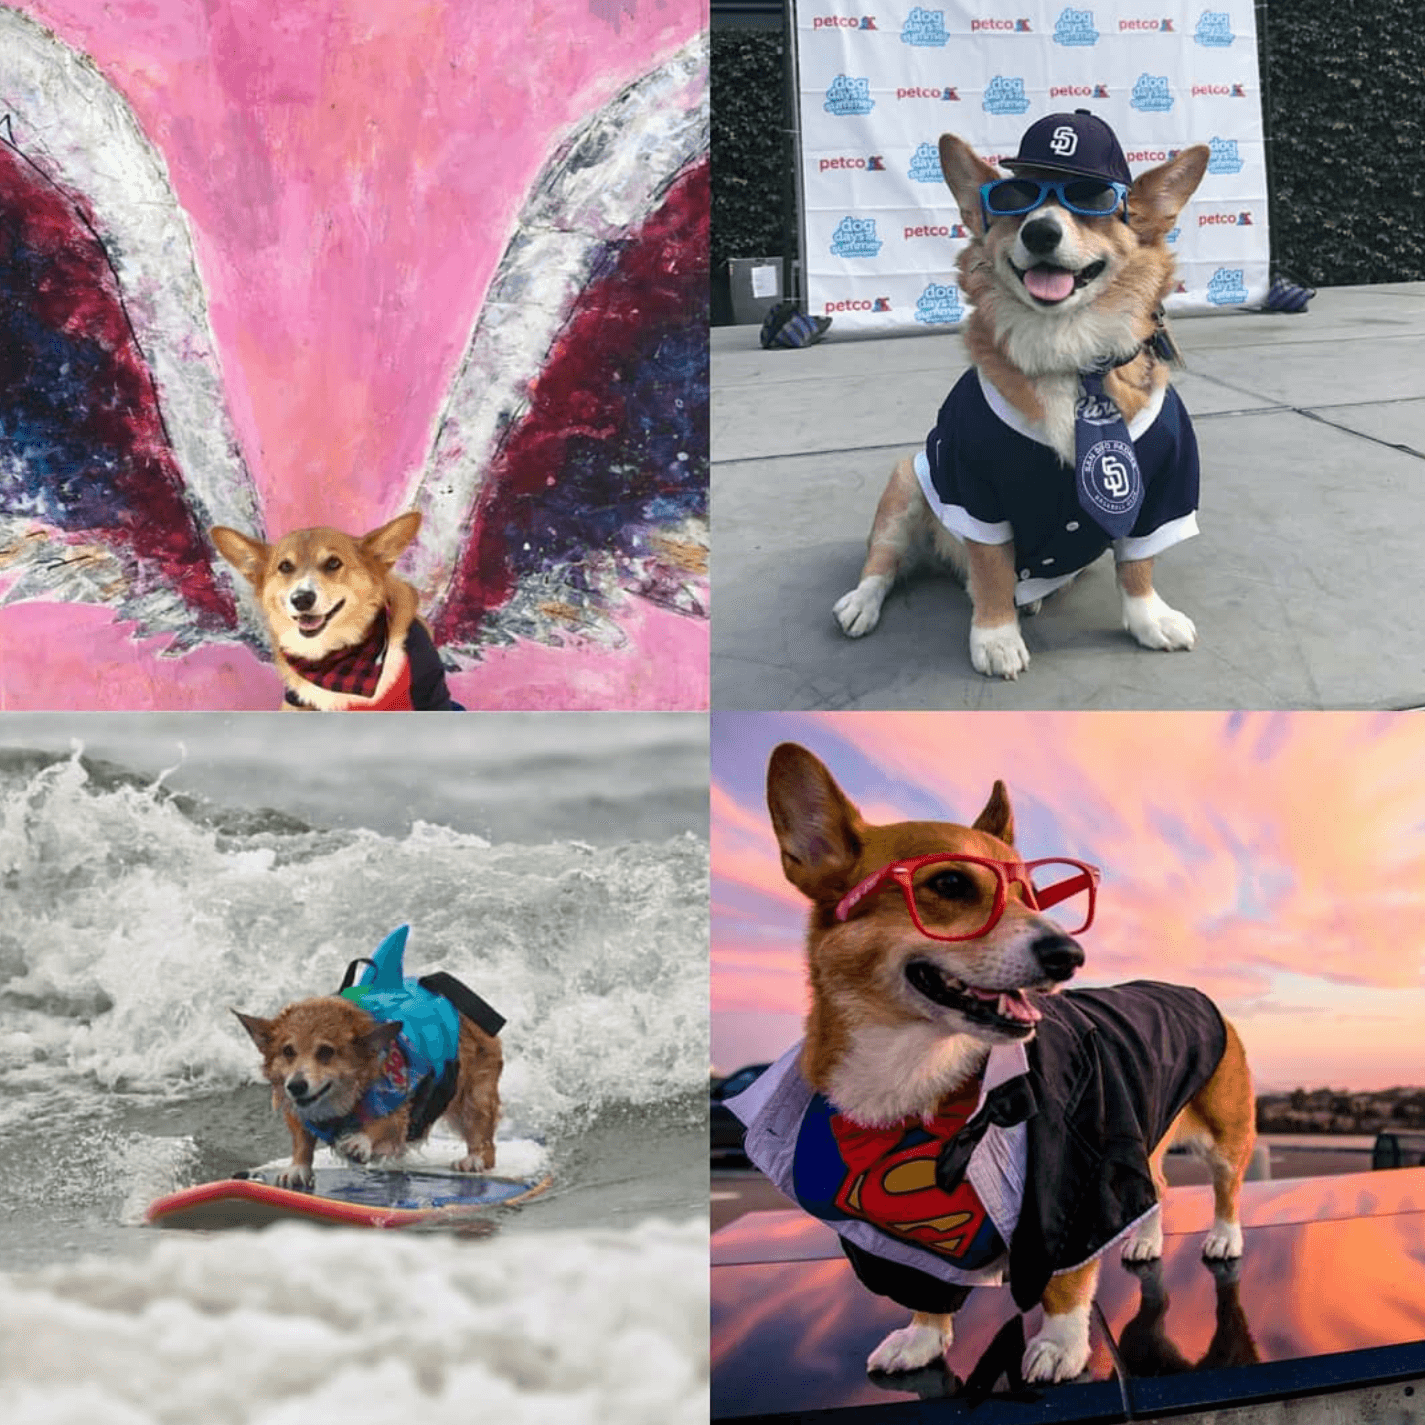 Blog Quartyard Animal M Stak 21 Serving Jojo Actually Competes In Dog Surfing Competitions You May Be Lucky Enough To Spot Him At The Upcoming 13th Annual Surf A Thon Competition Del